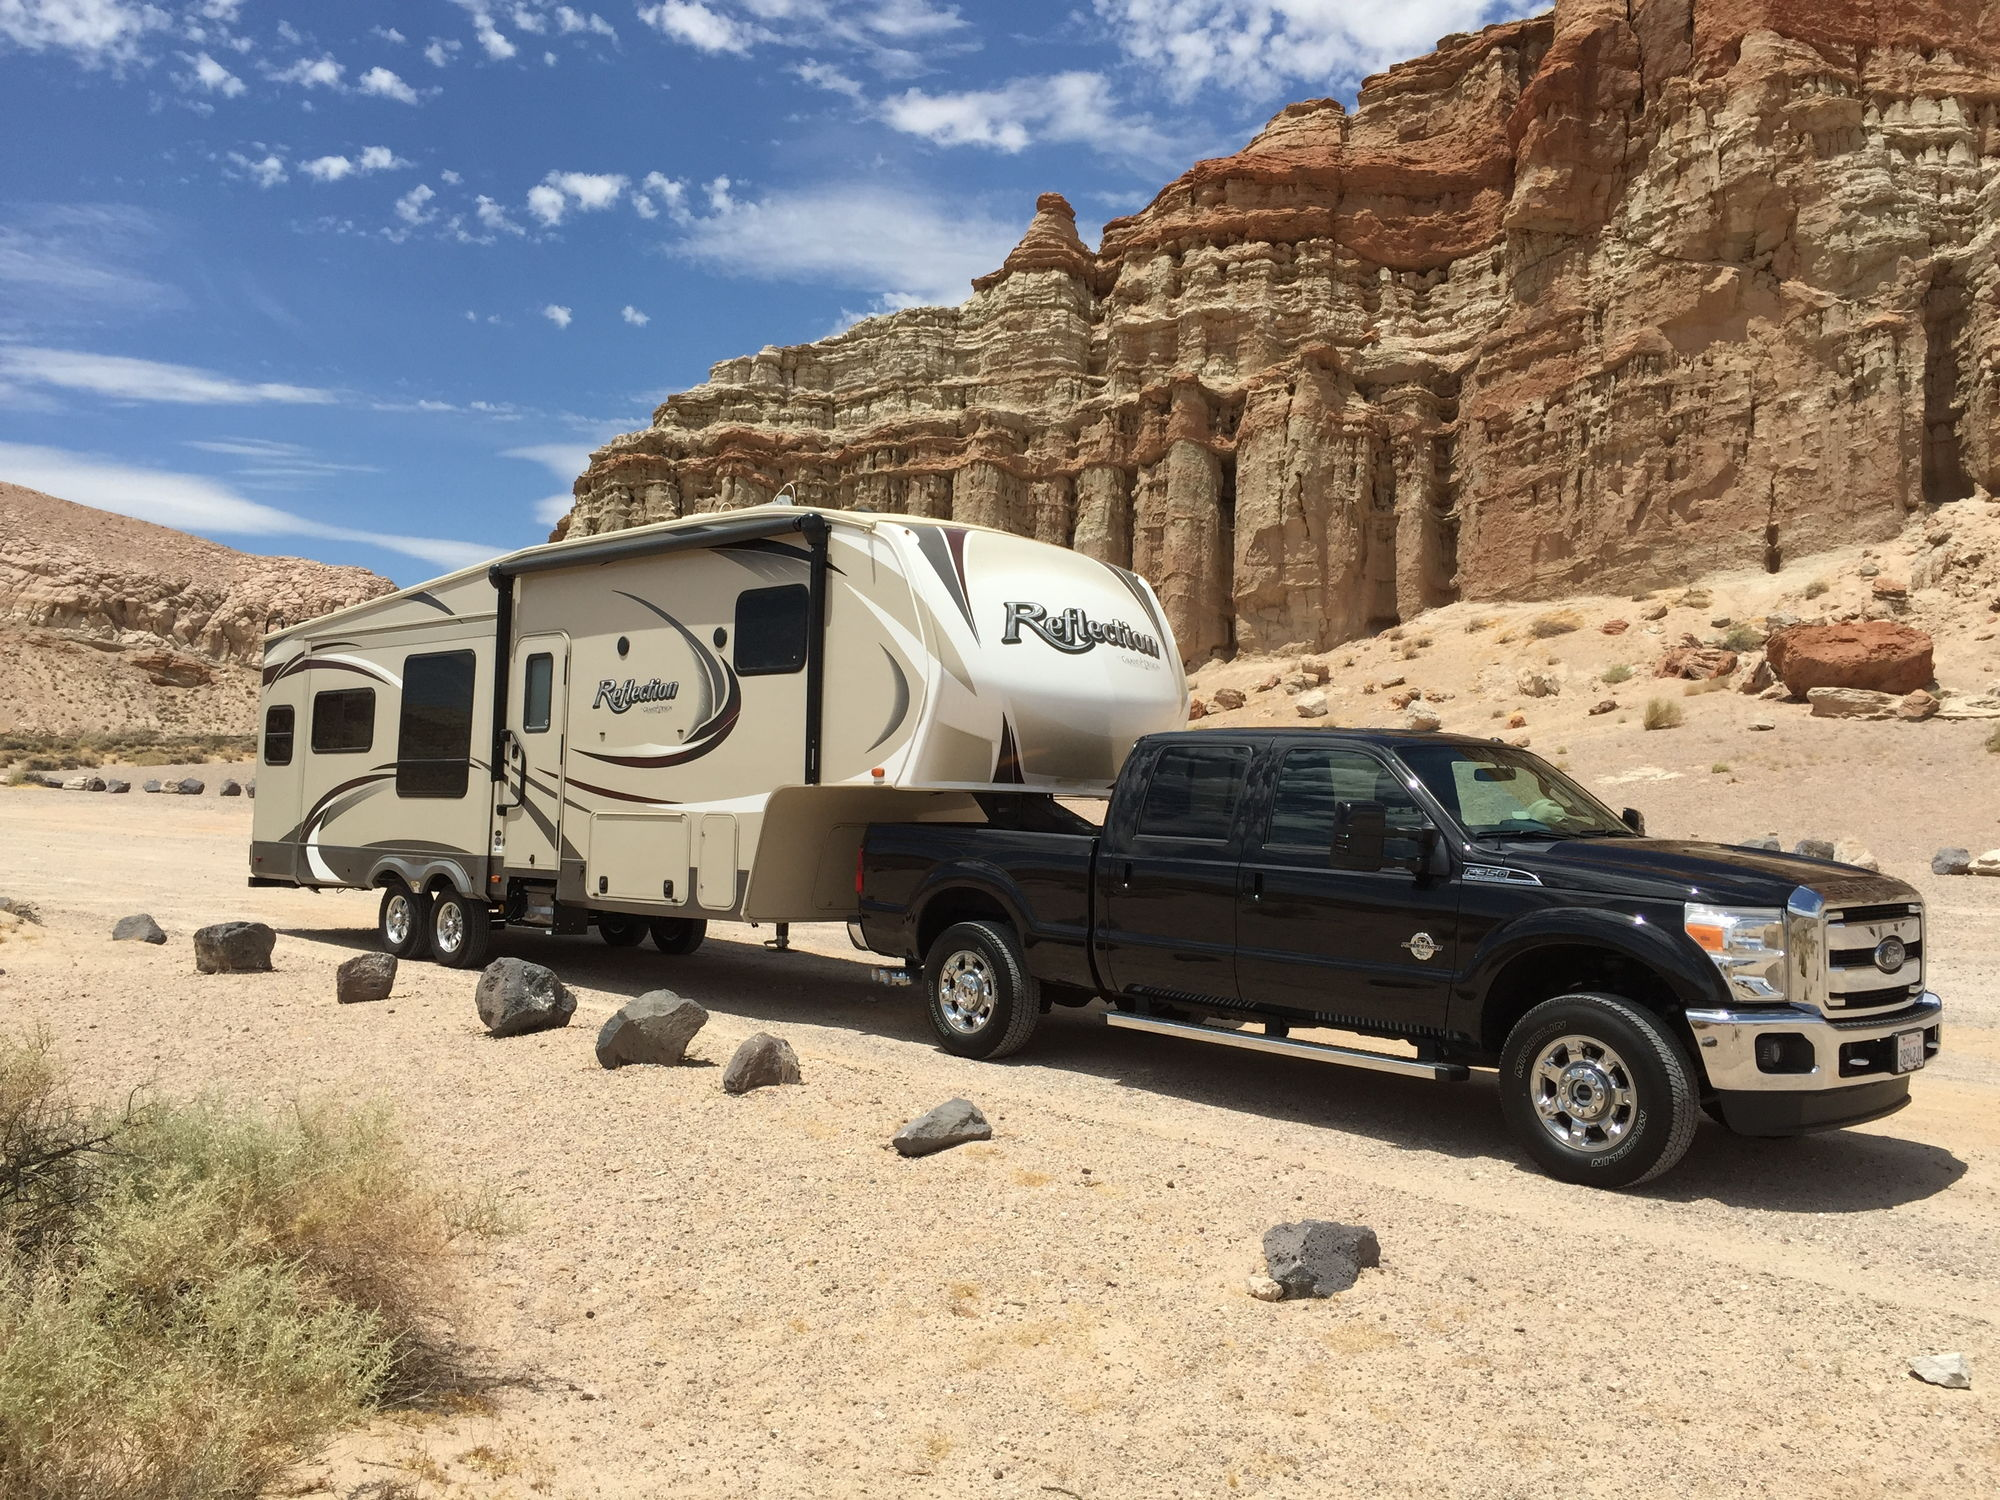 Grand design solitude problems - I Have A 2015 Reflection 303rls Love It Some Minor Issues Customer Service Is Second To None Hit Me Up If You Have Any Questions